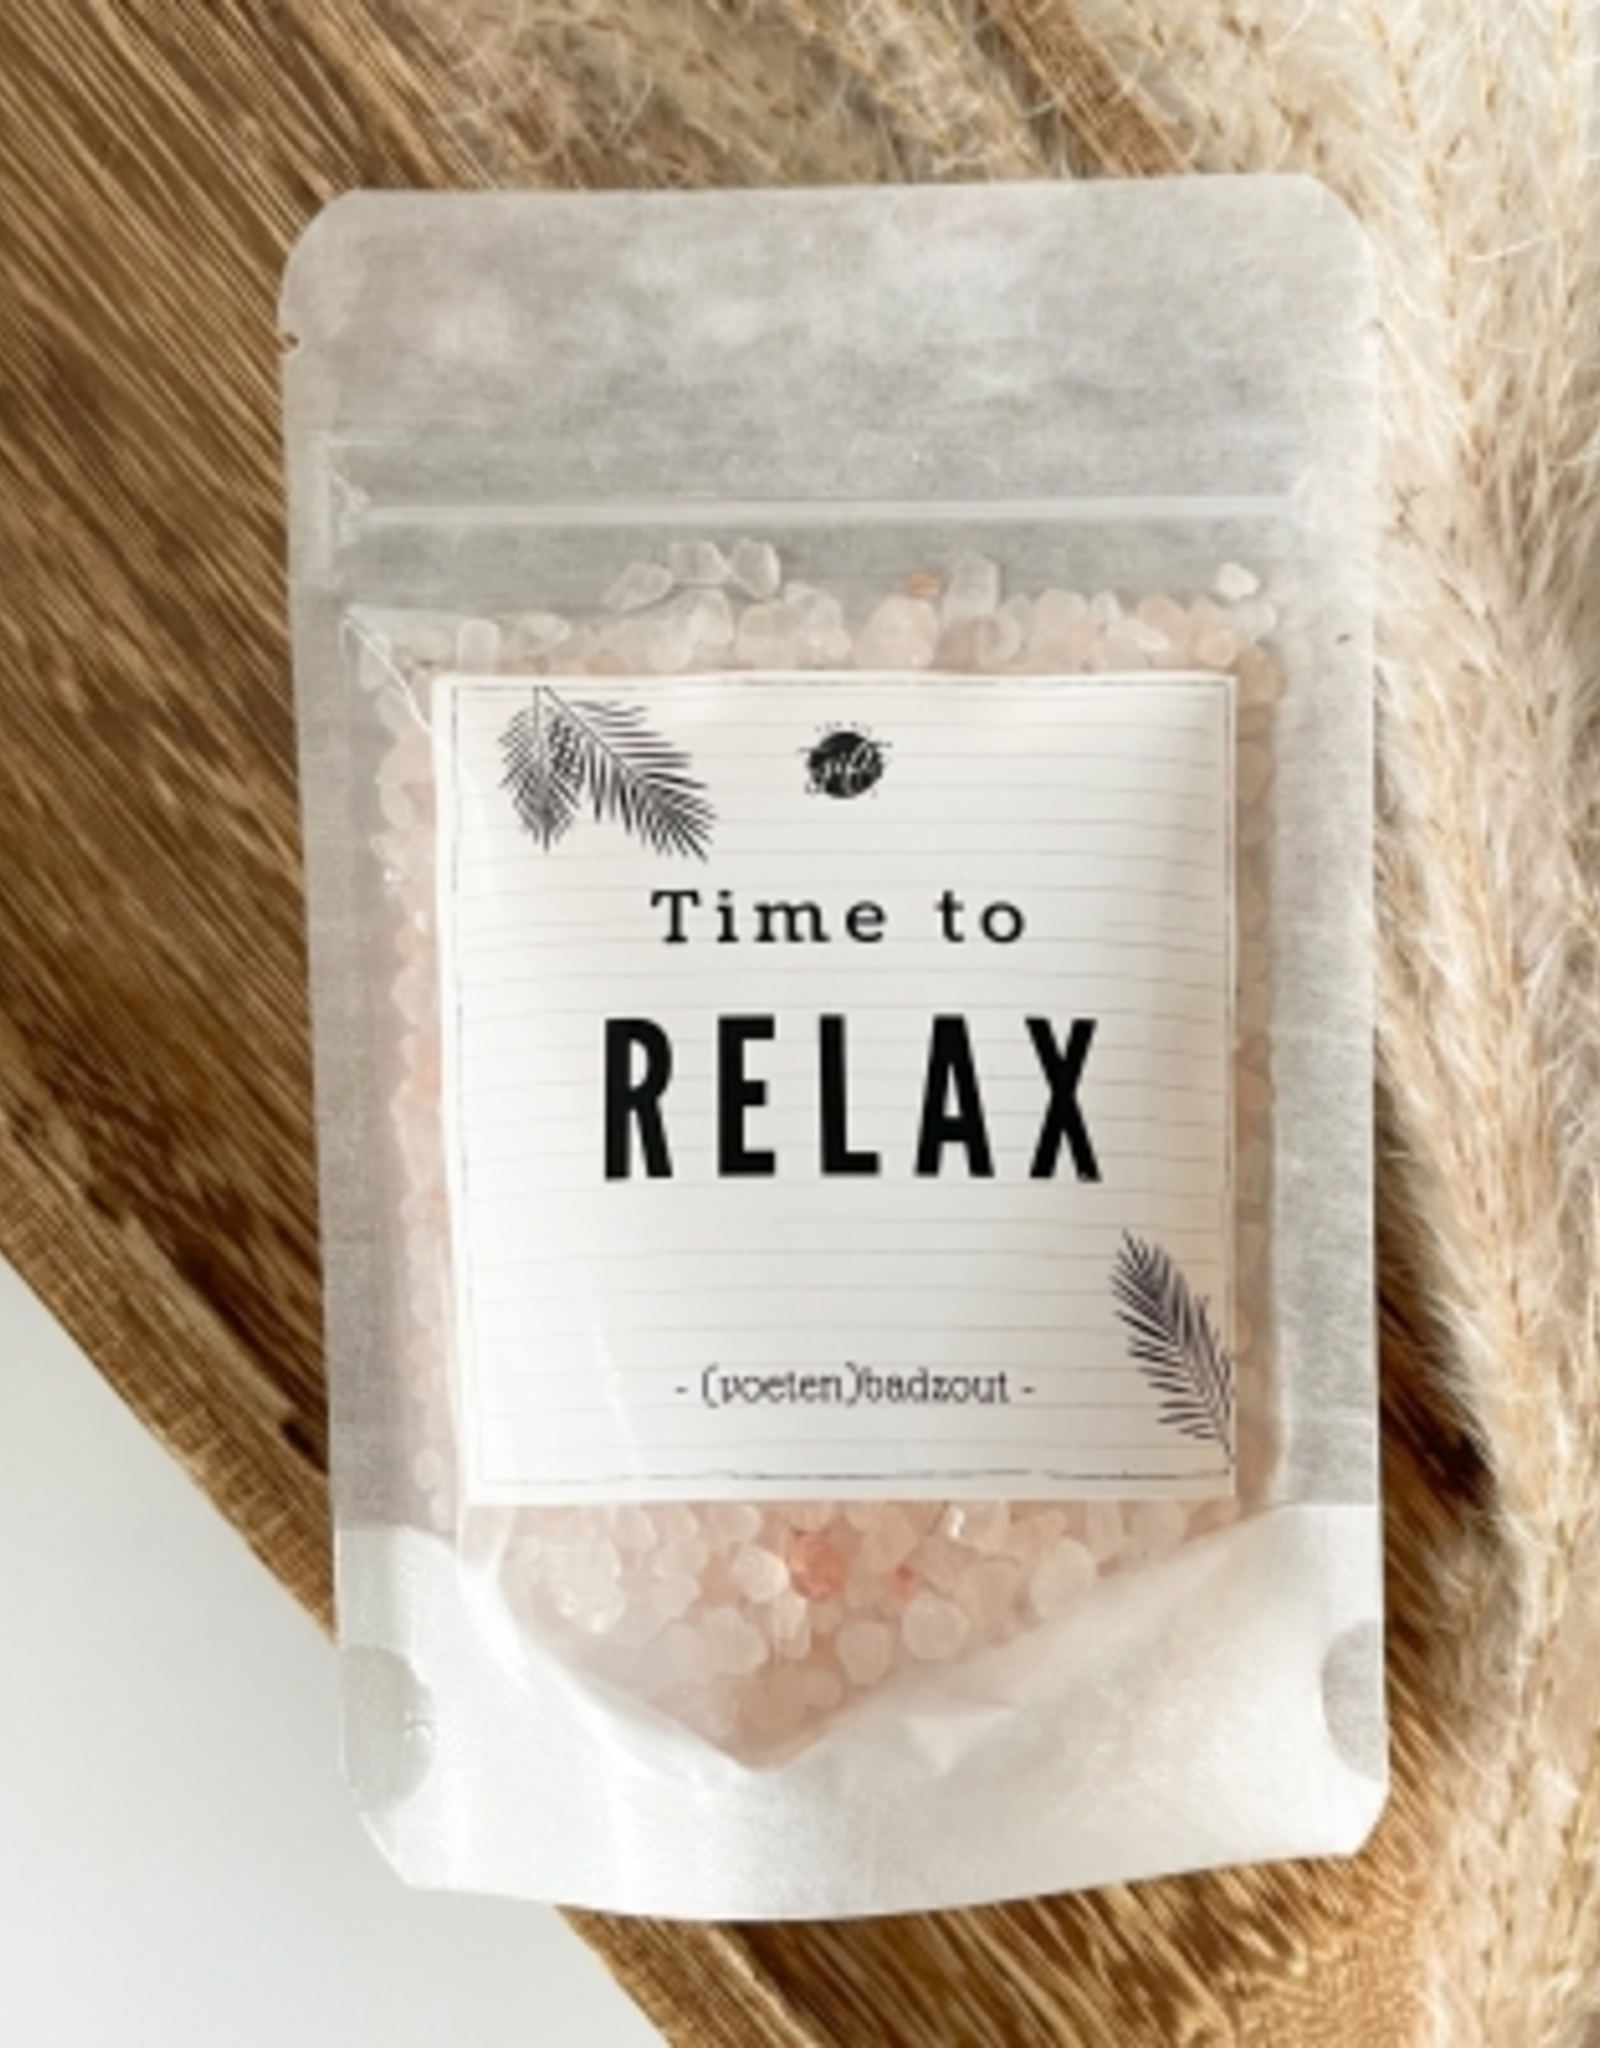 """The Big Gifts (Voeten) Badzout """"Time to Relax"""" - The Big Gifts"""